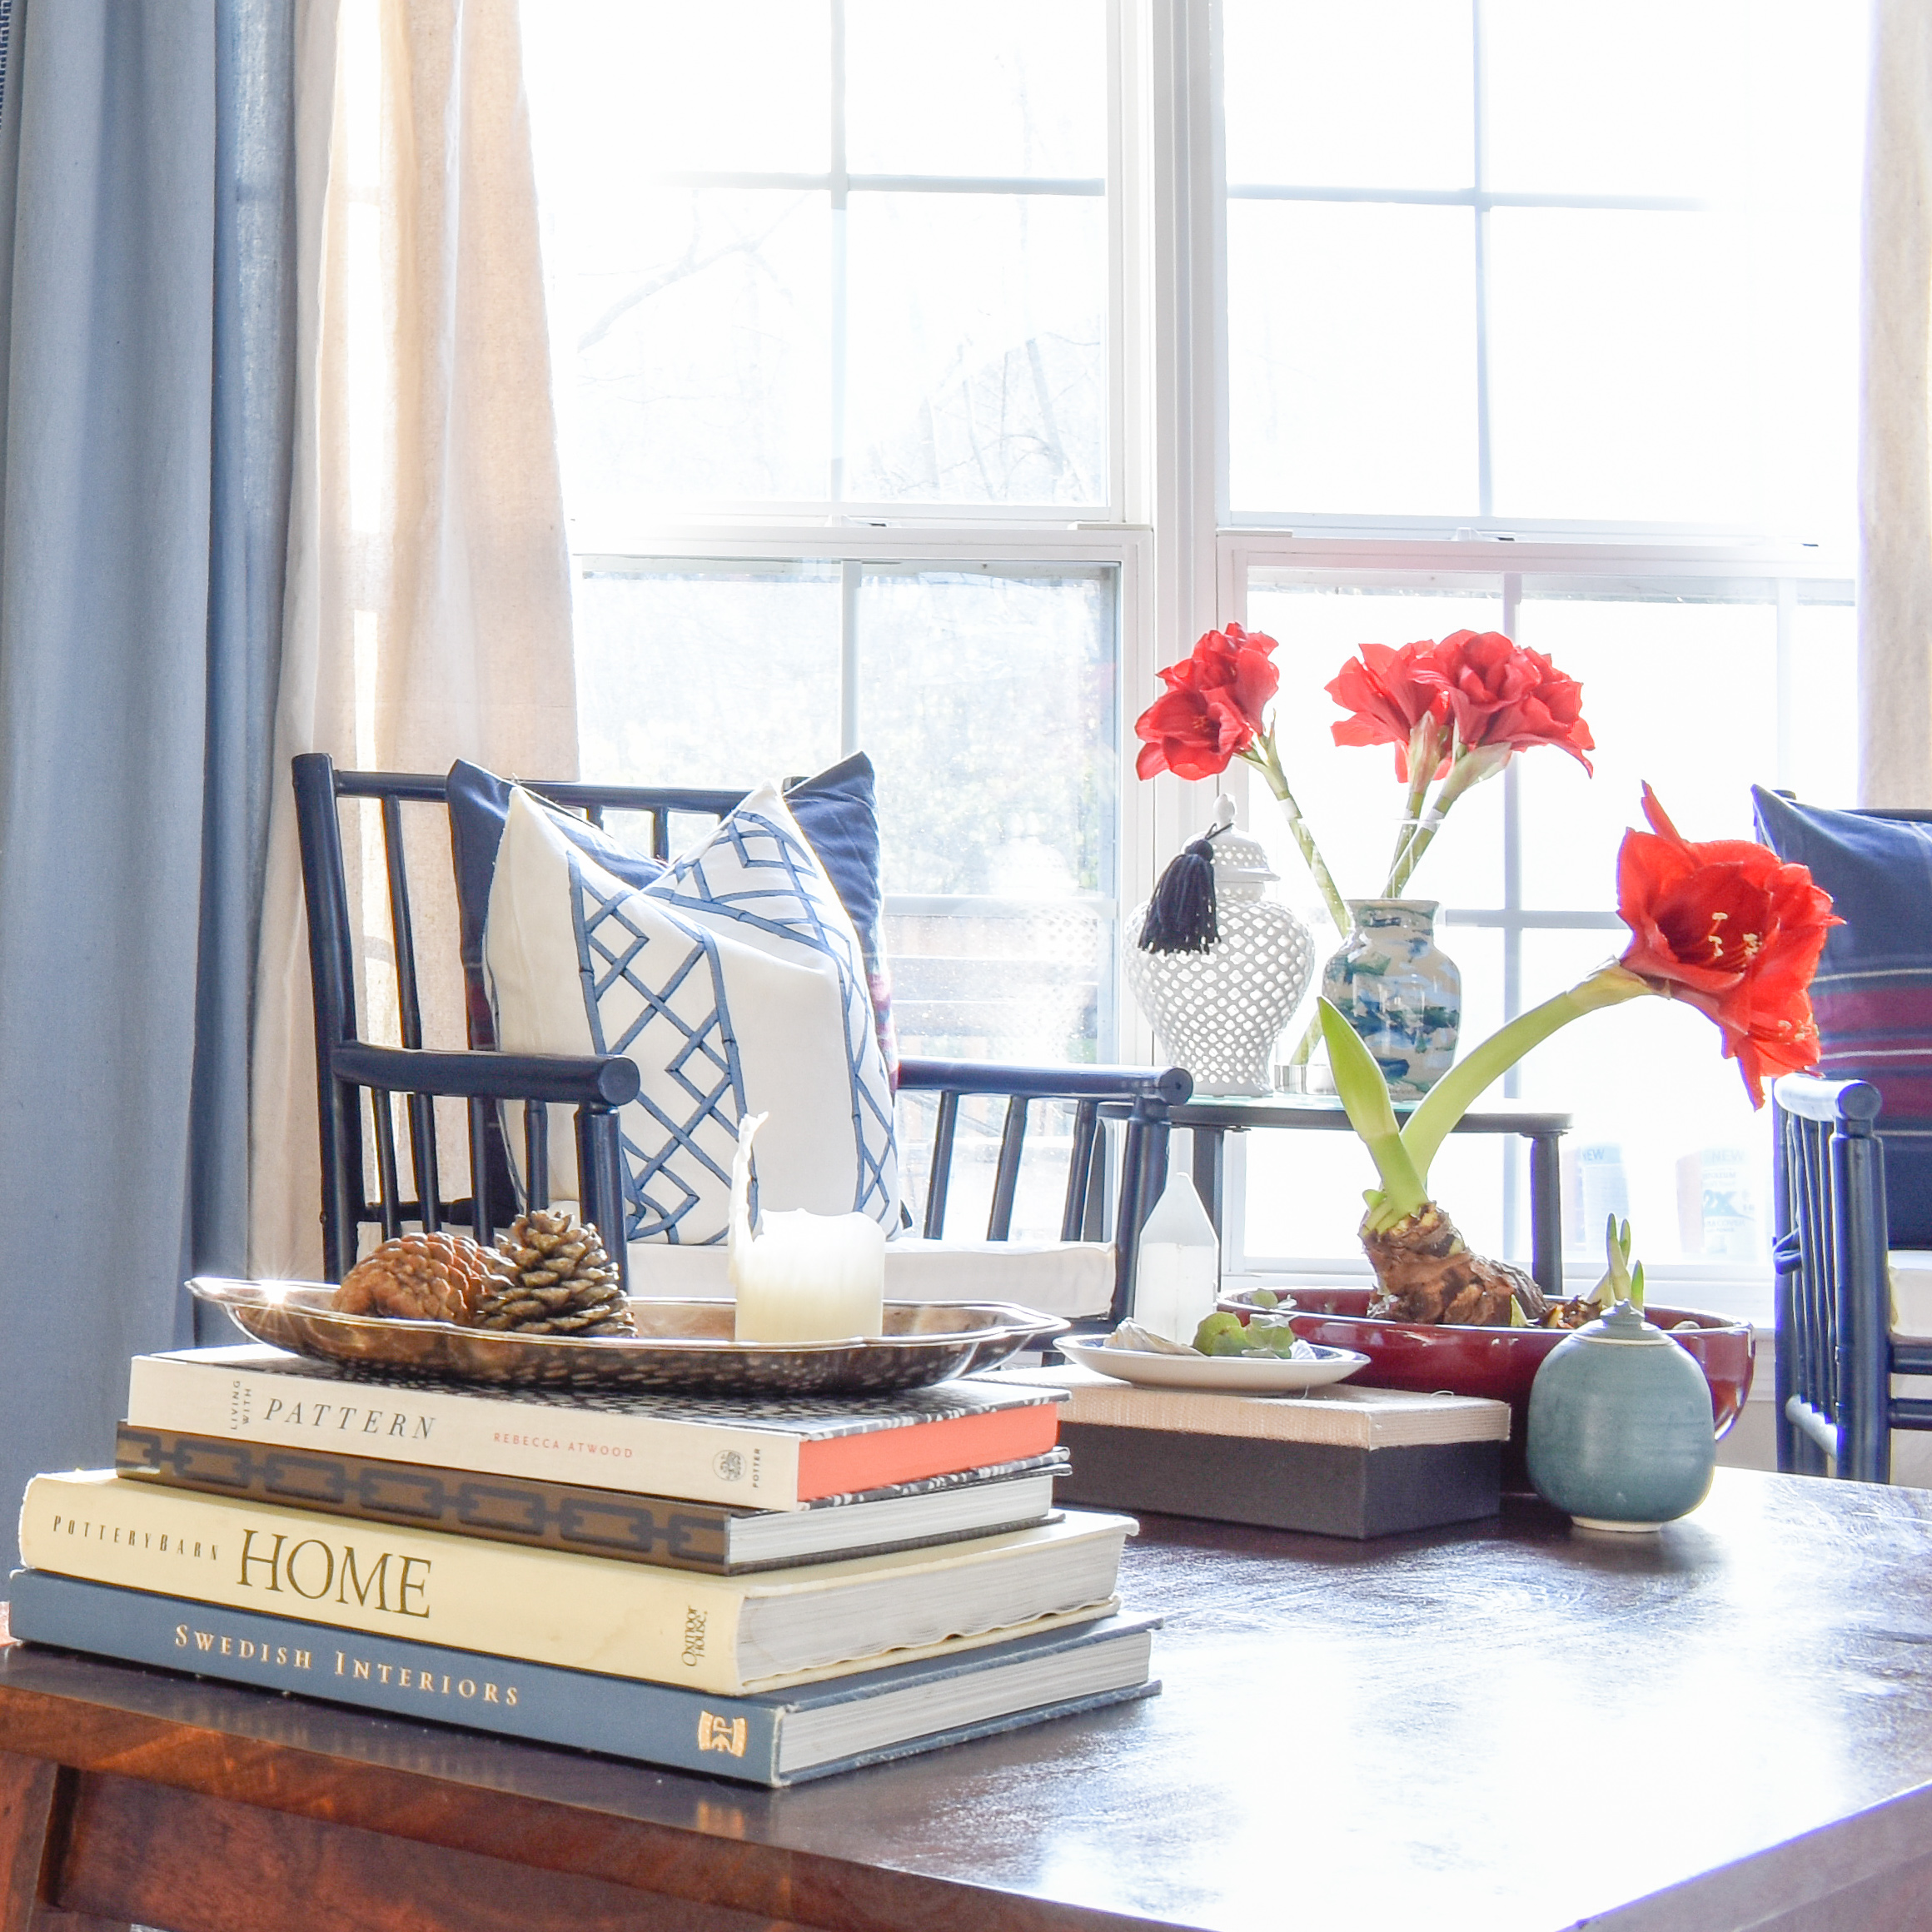 Christmas Home Tour: How To Decorate with Traditional Holiday Decor On A Budget | red amaryllis makes a festive statement when paired with varying shades of blue for Christmas decor. These plants last all season long and can remain well into the new year.